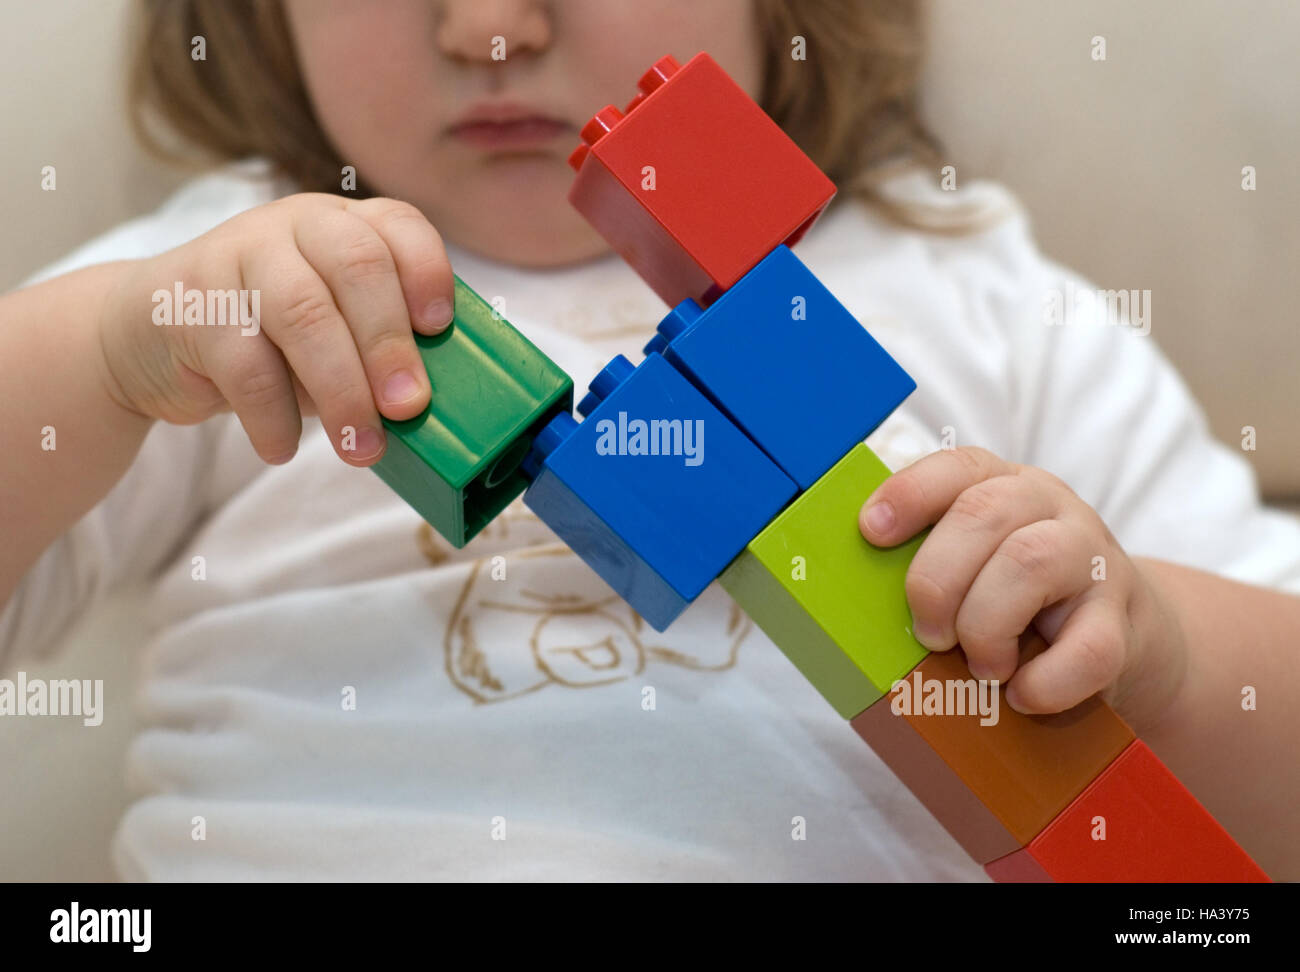 Baby's hands with building kit - Stock Image